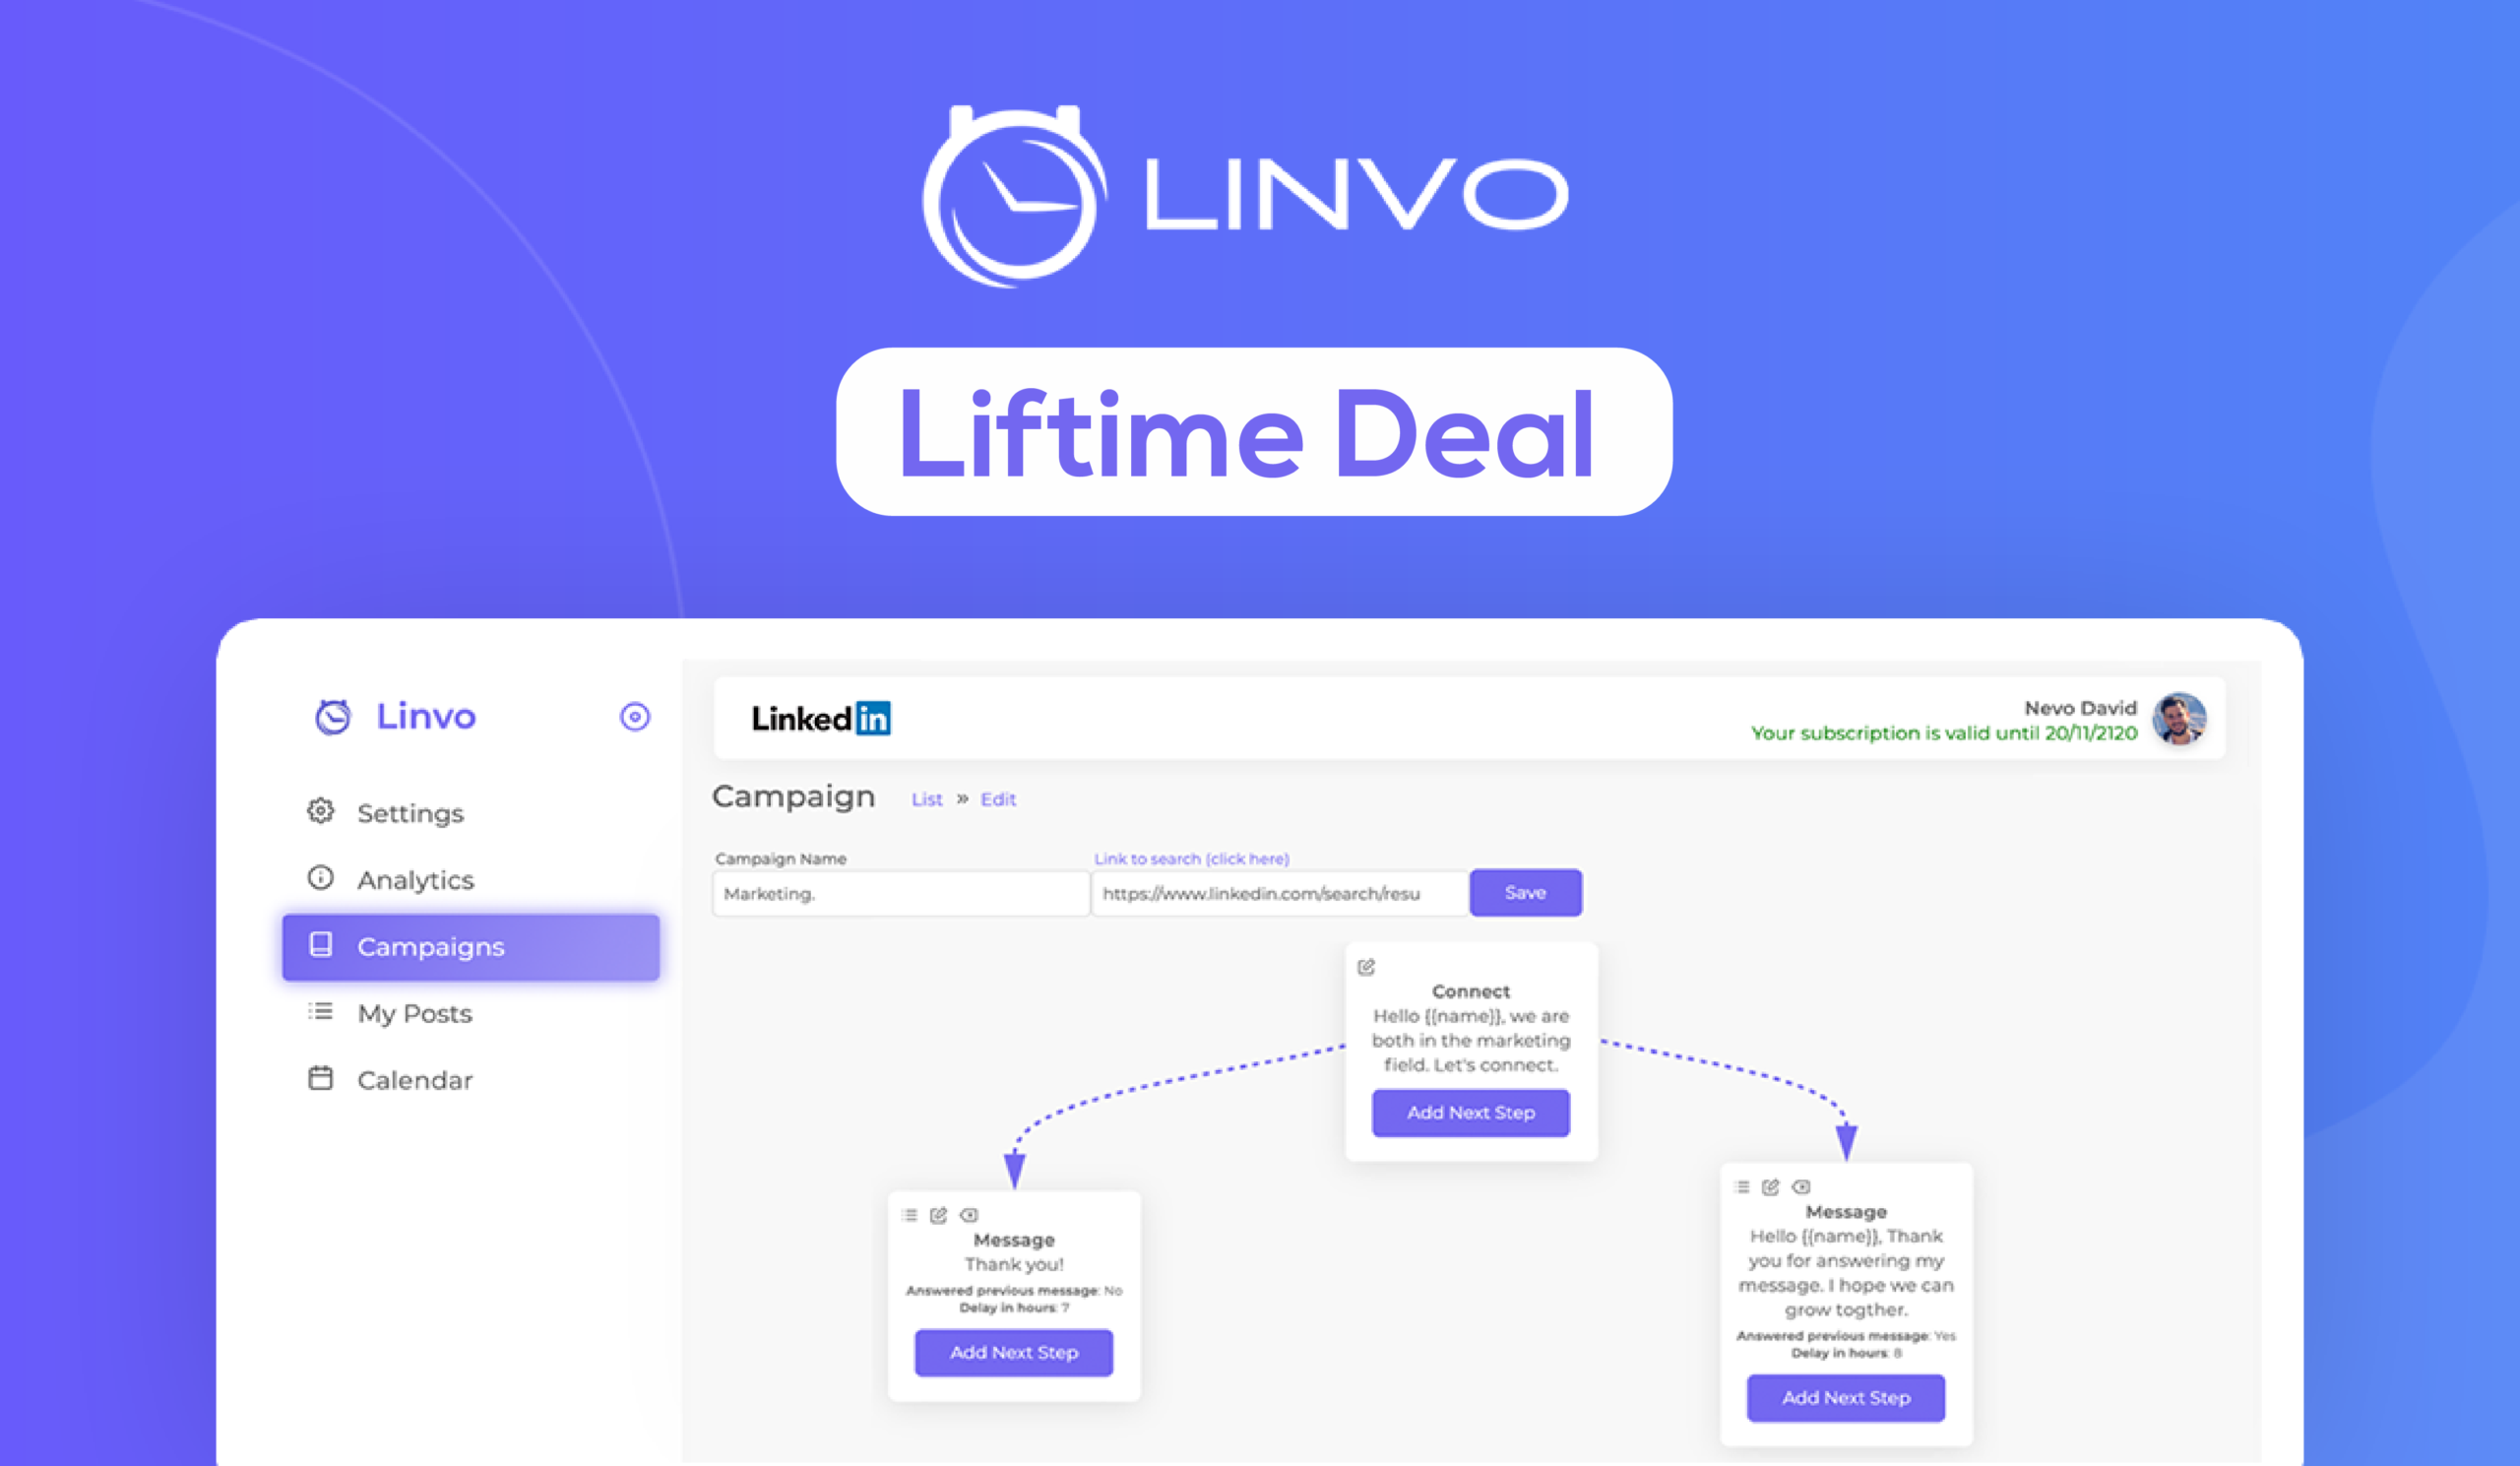 Linvo Review, Lifetime Deal 2021